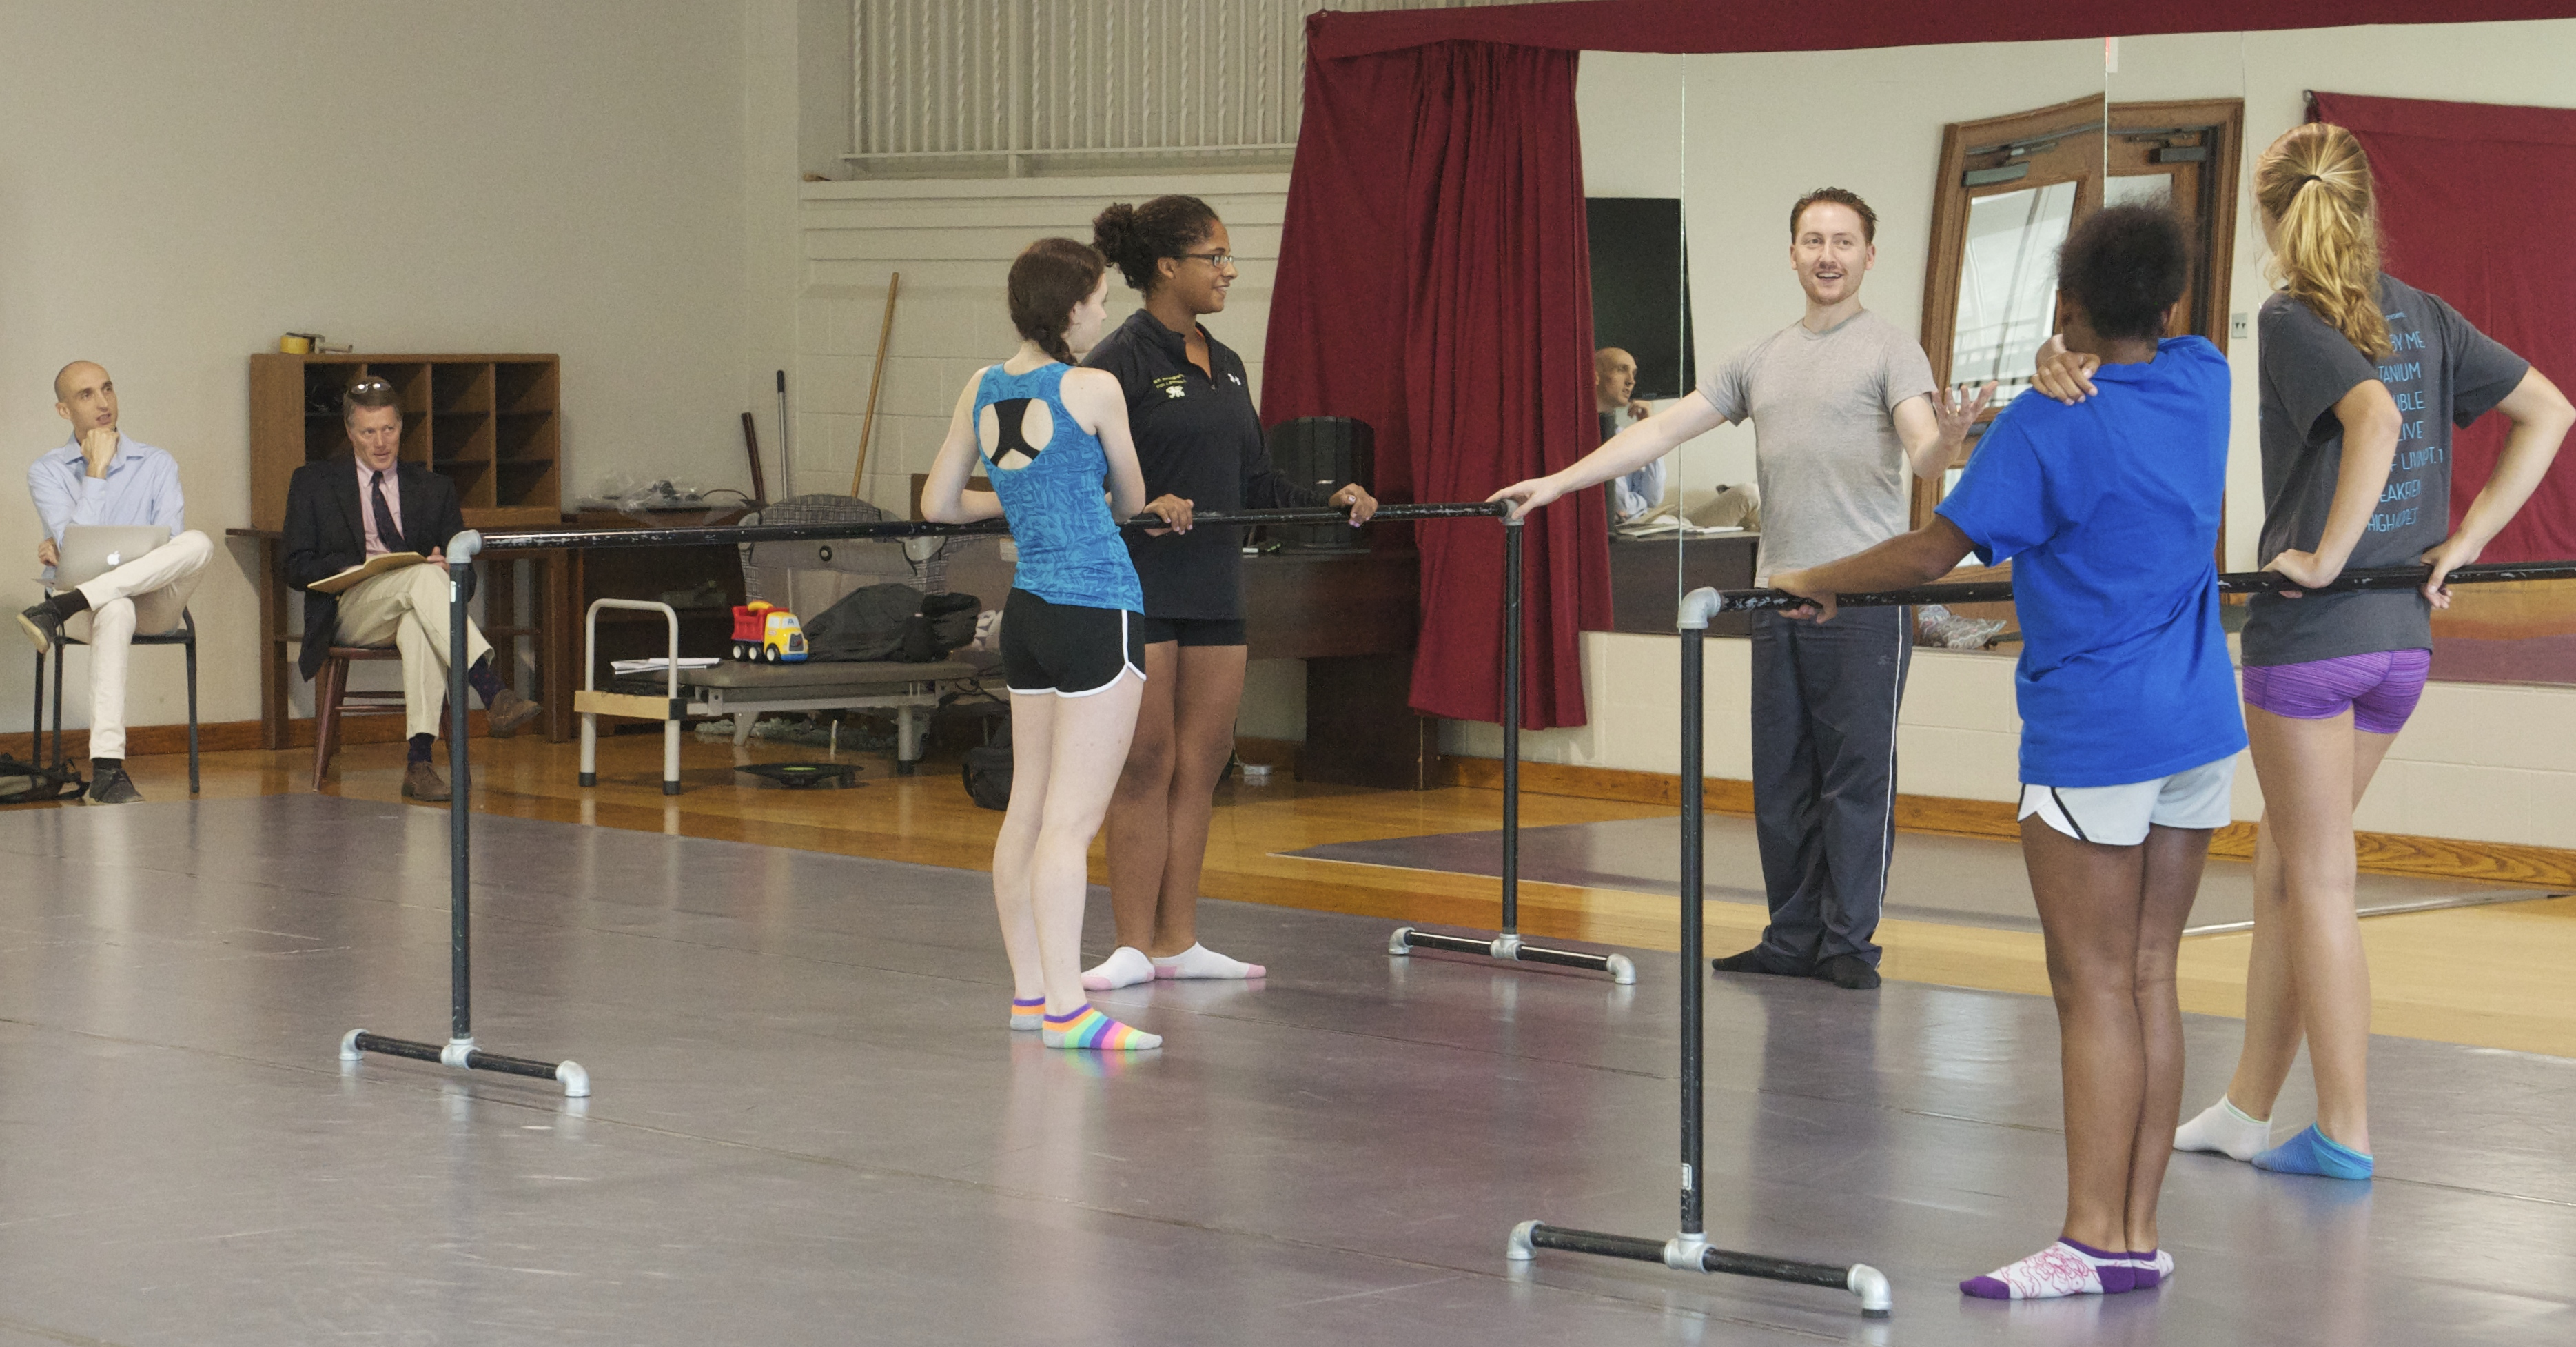 """I Visited Avi Gold's Dance 1 Class Last Week, And Was Struck How Often He  Asked His Students To Reflect About What They Had Just Done – """"How Was That?"""